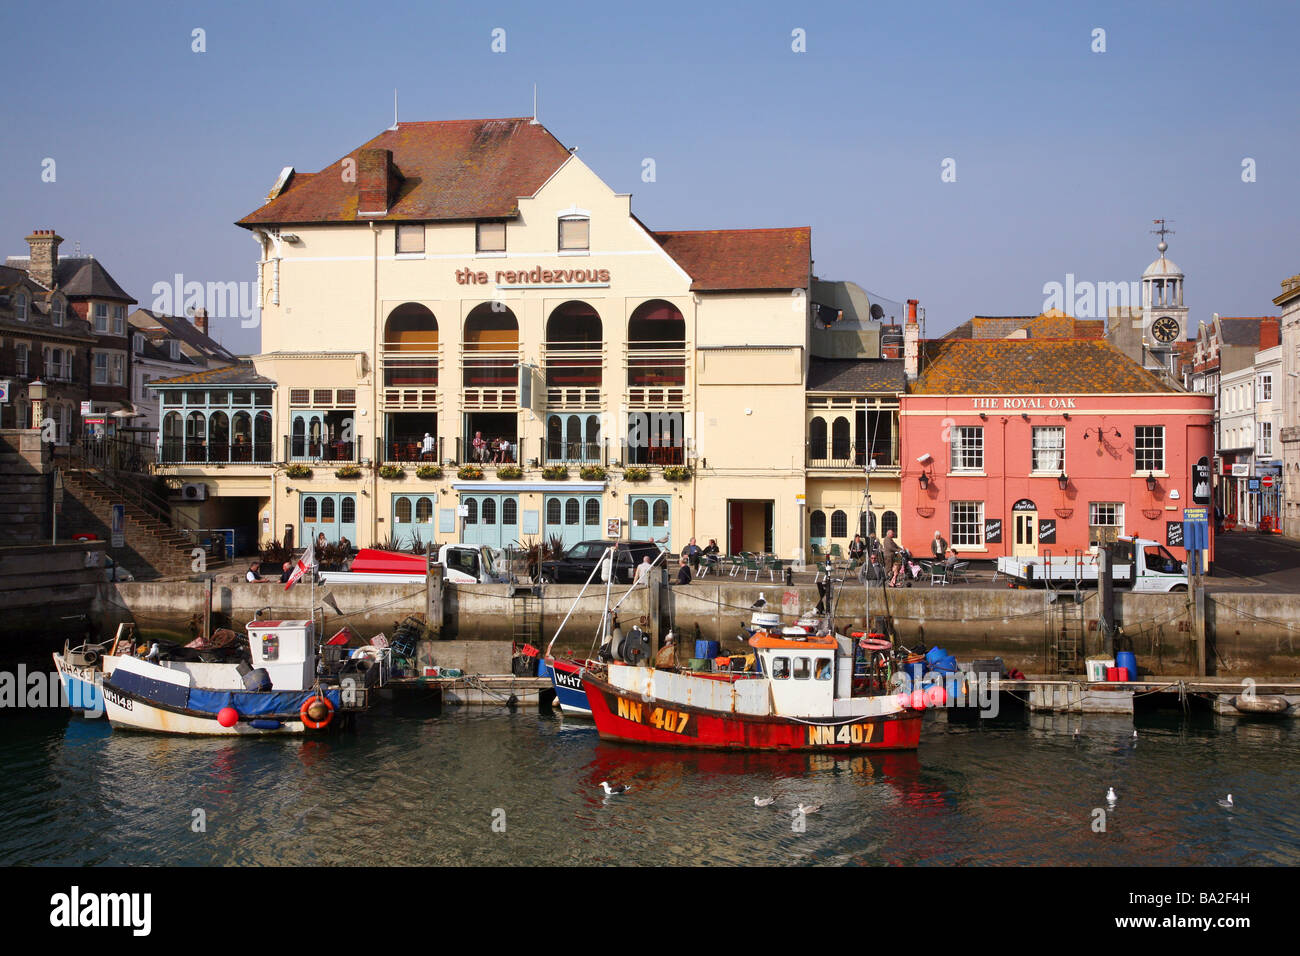 Fishing boats and harbourside pubs near the Town Bridge in the popular south coast resort of Weymouth - Stock Image